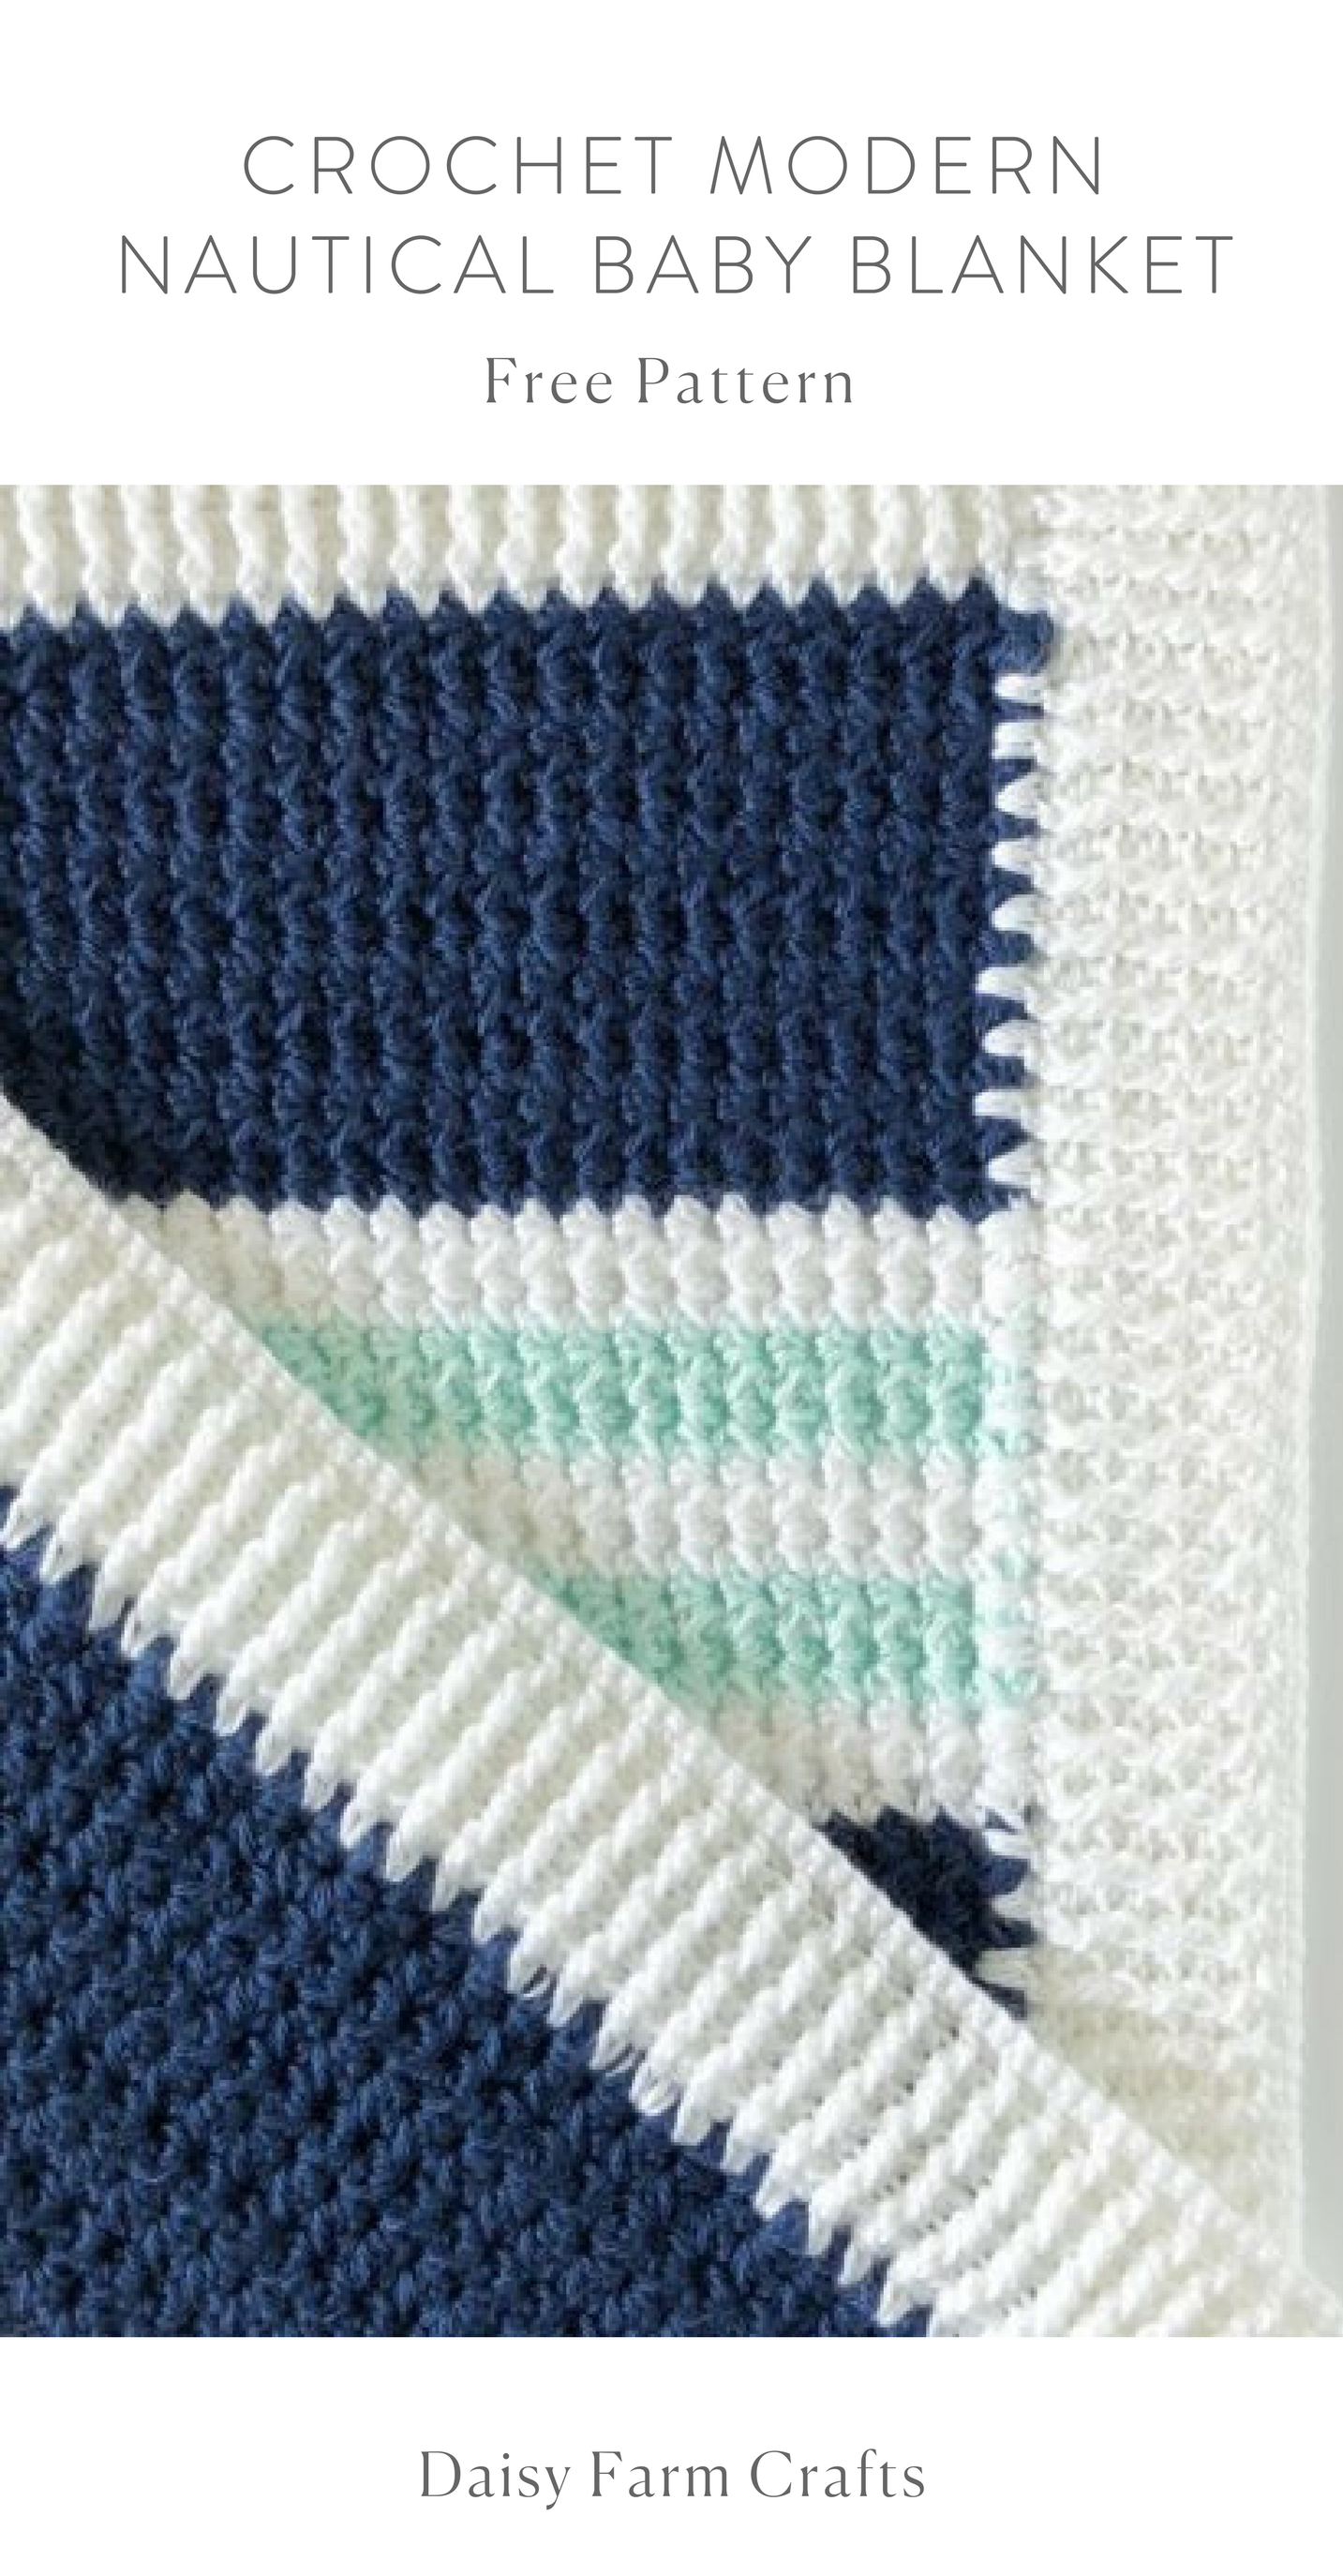 Free Pattern - Crochet Modern Nautical Baby Blanket | Crochet ...